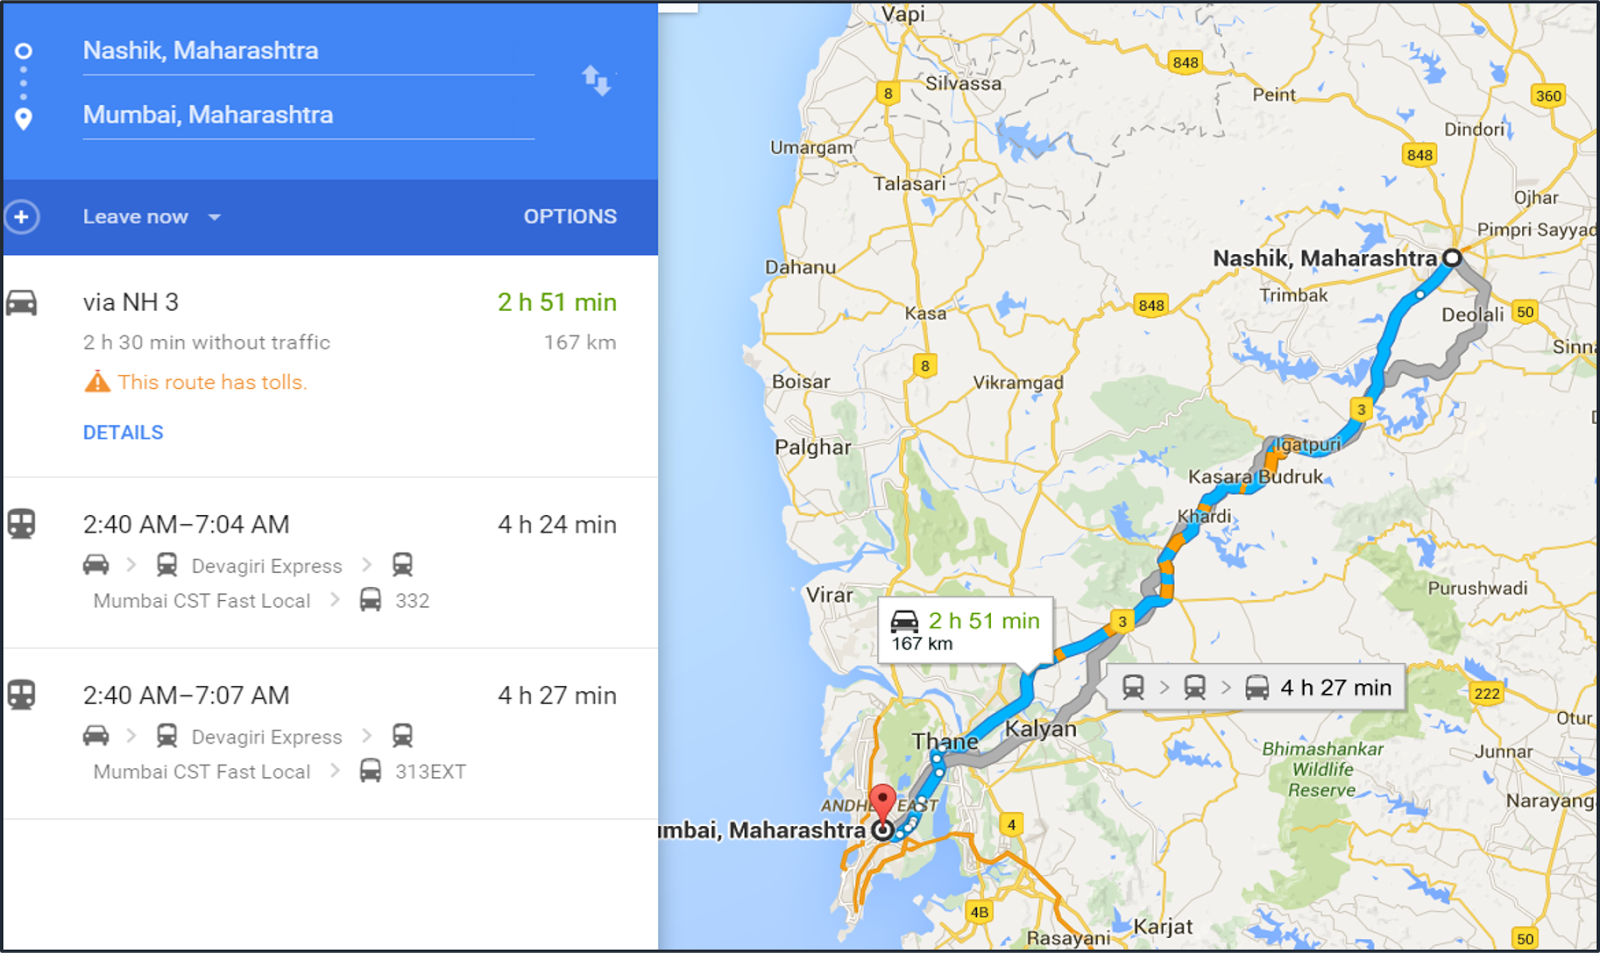 How to reach fastest to Mumbai from Nashik Boneless Research